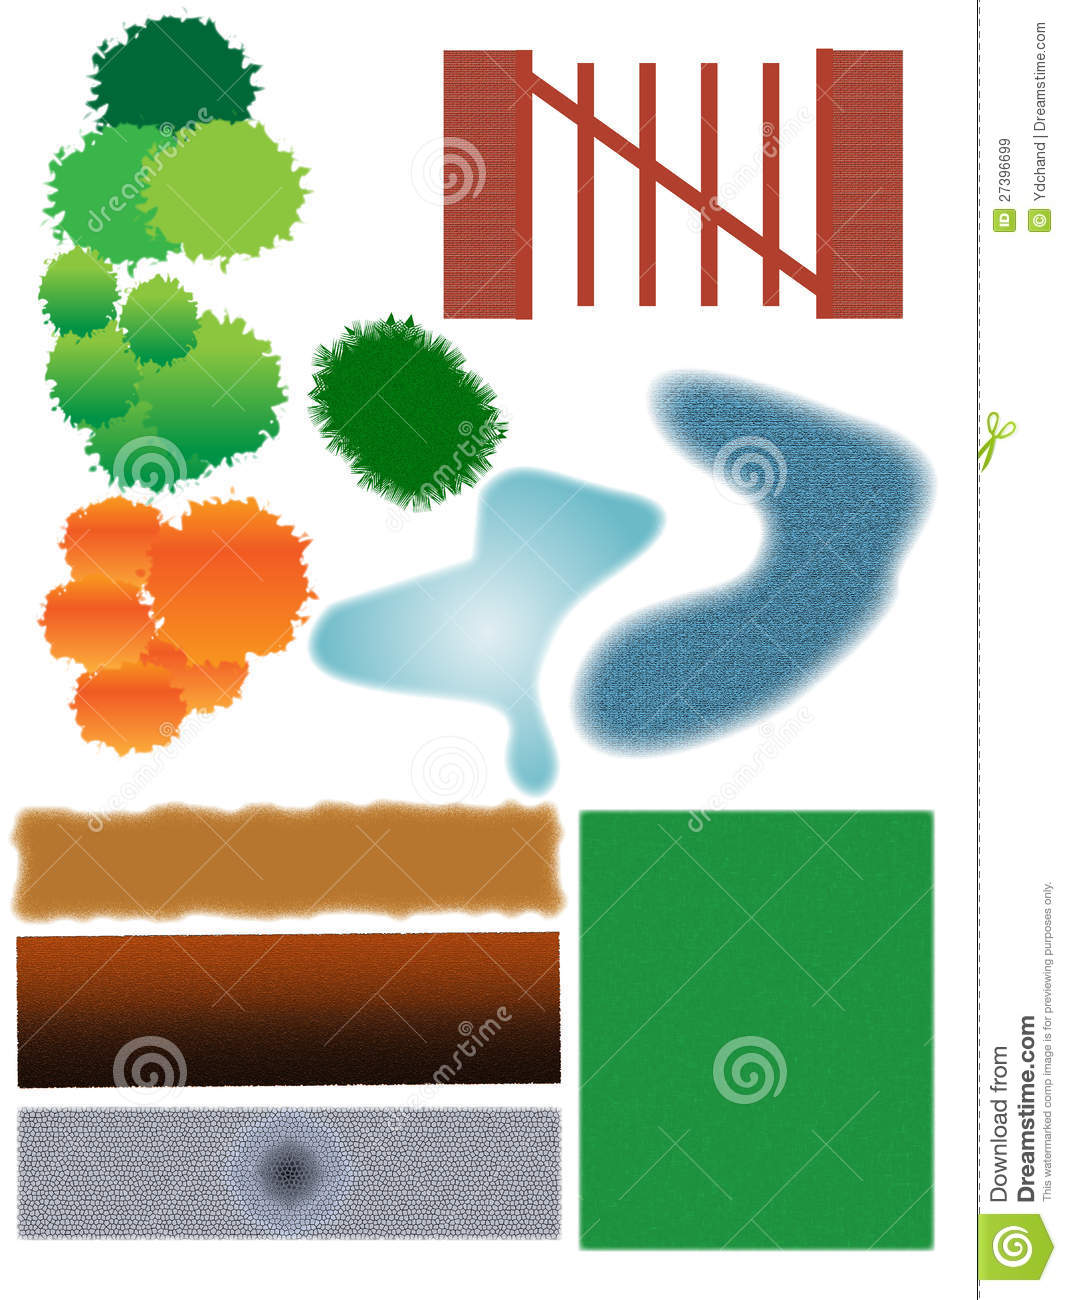 Landscaping icons royalty free stock images image 27396699 for Landscape design icons